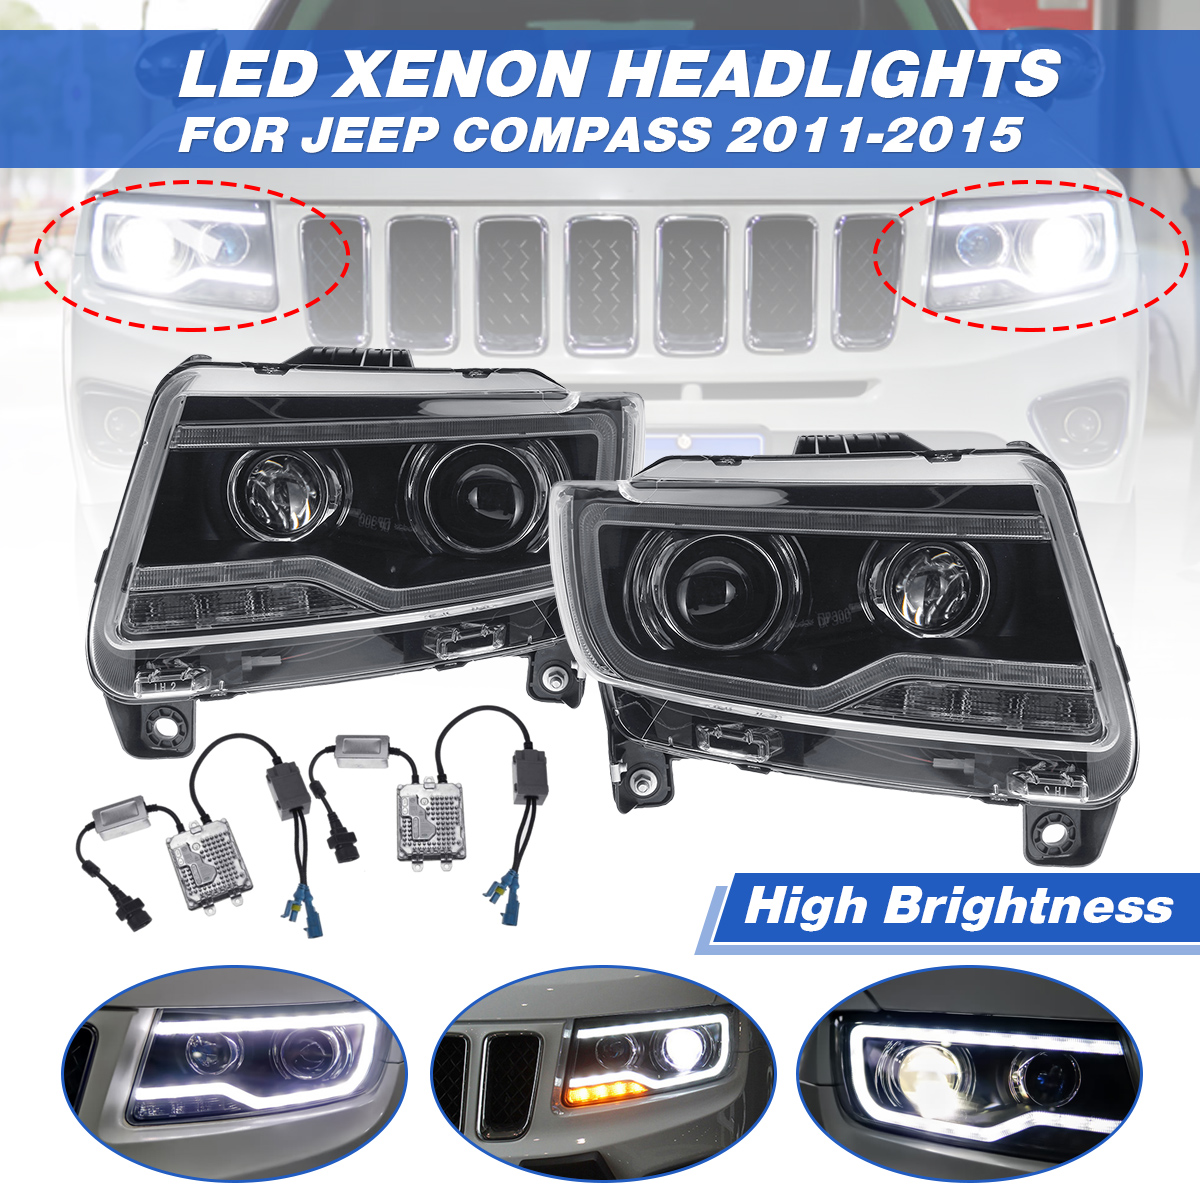 Car Styling Headlight Lamp for JEEP for Compass 11-15 LED Headlight for HID Head Lamp LED Daytime Running Light LED DRL Bi-XenonCar Styling Headlight Lamp for JEEP for Compass 11-15 LED Headlight for HID Head Lamp LED Daytime Running Light LED DRL Bi-Xenon